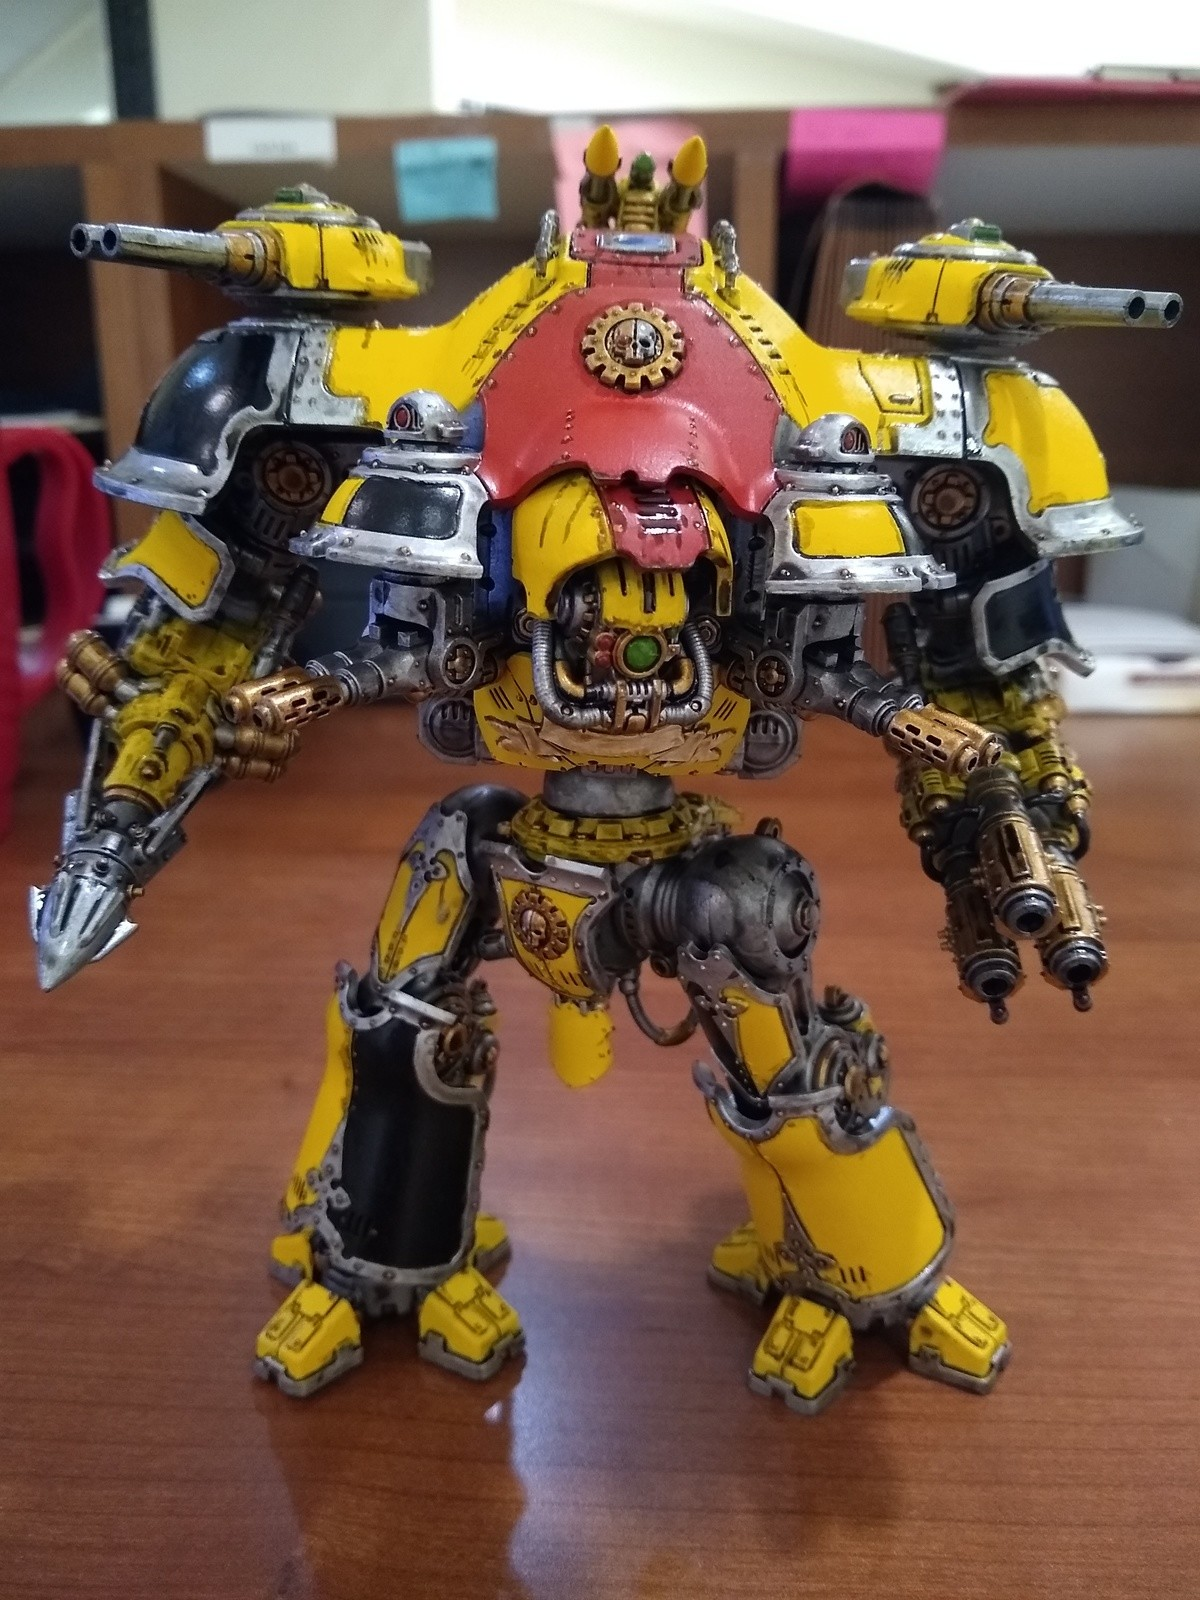 A valiant effort. Yellow is a bitch and a half to paint. I still have most of a mecanicus army to paint this way. Why do I do this to myself..... Effort my ass, that's damn good for yellow. I usually just give up and stick with Averland sunset - not quite as vibrant, but I'll be damned if it's not the onl